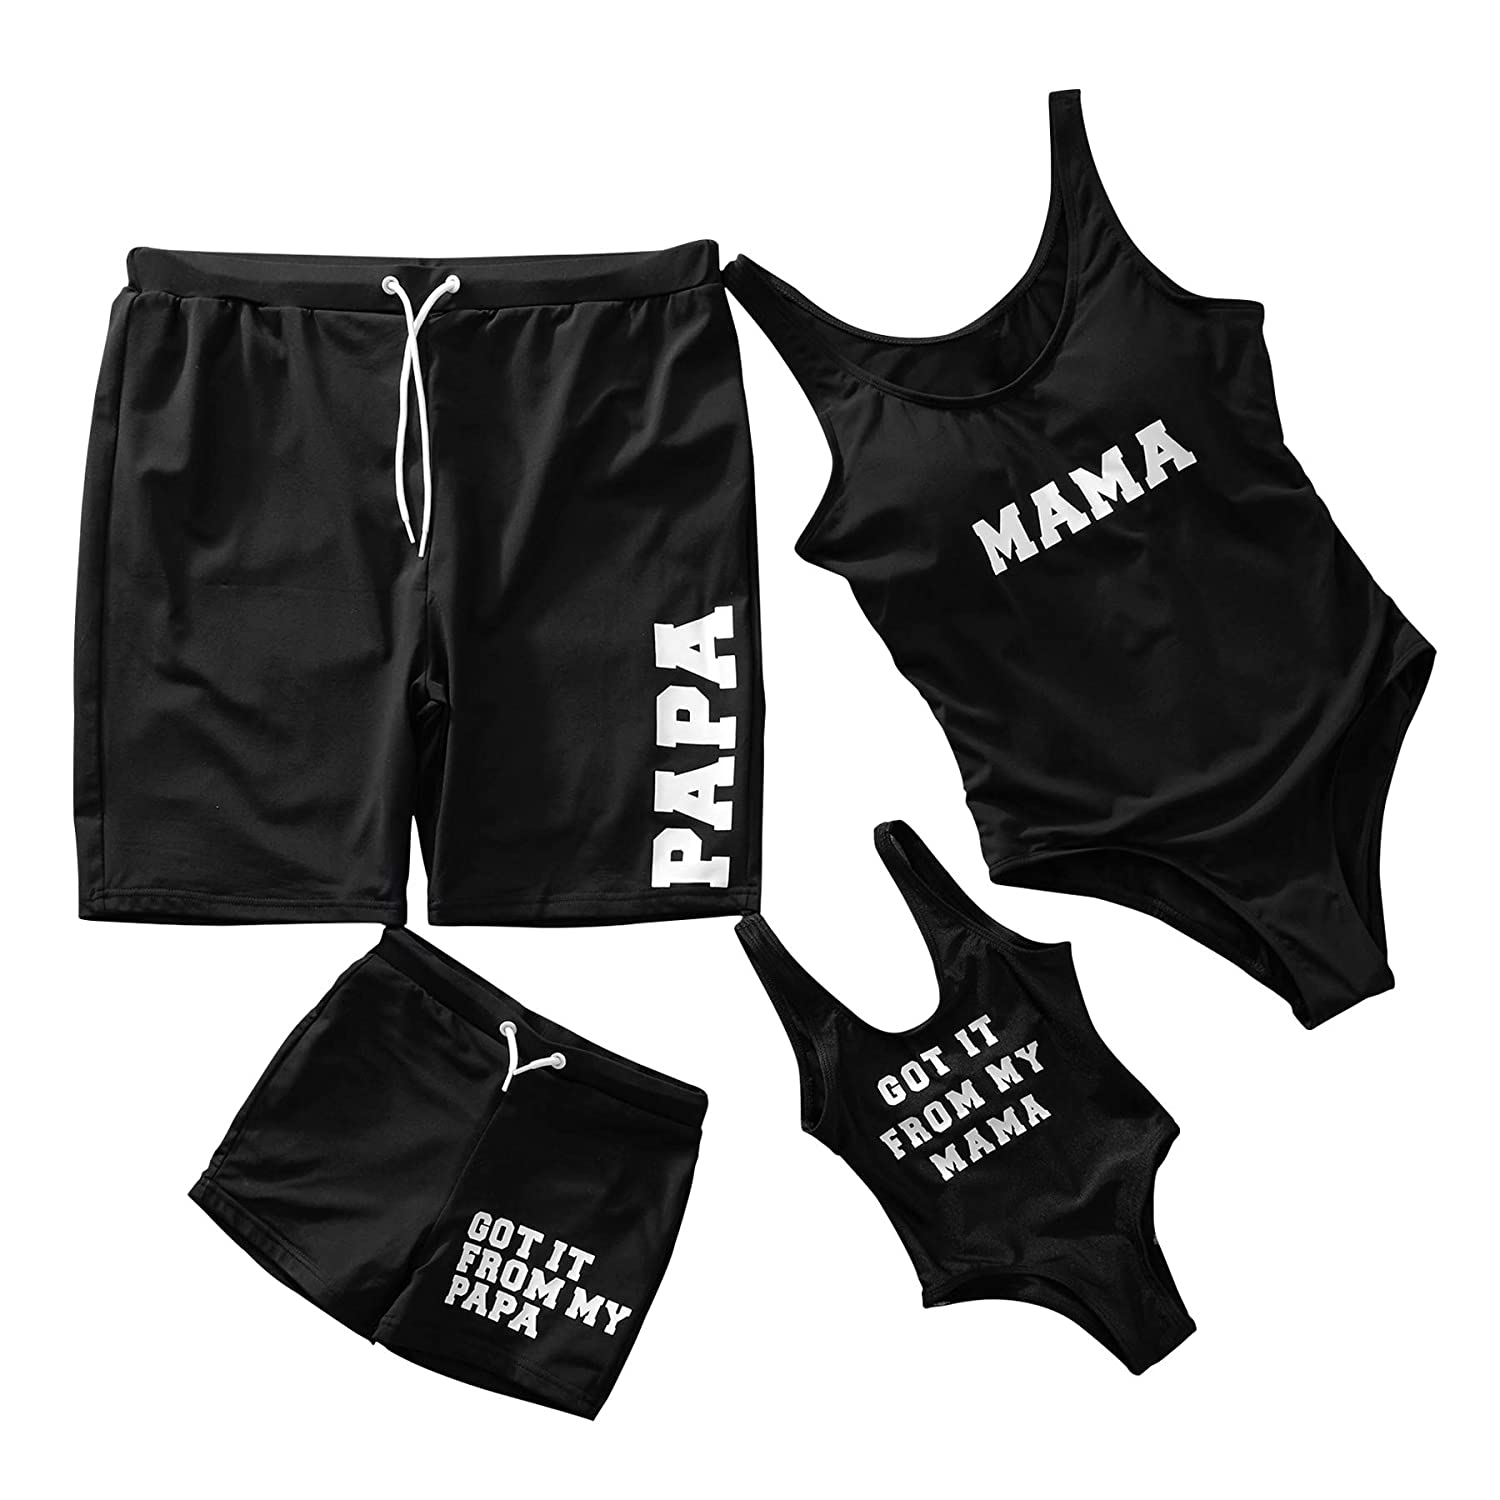 29fe0a74c8 Yaffi Mommy and Me Swimwear Family Matching One Piece Beach Wear Letters  Printed Monokini Bathing Suit at Amazon Women's Clothing store: